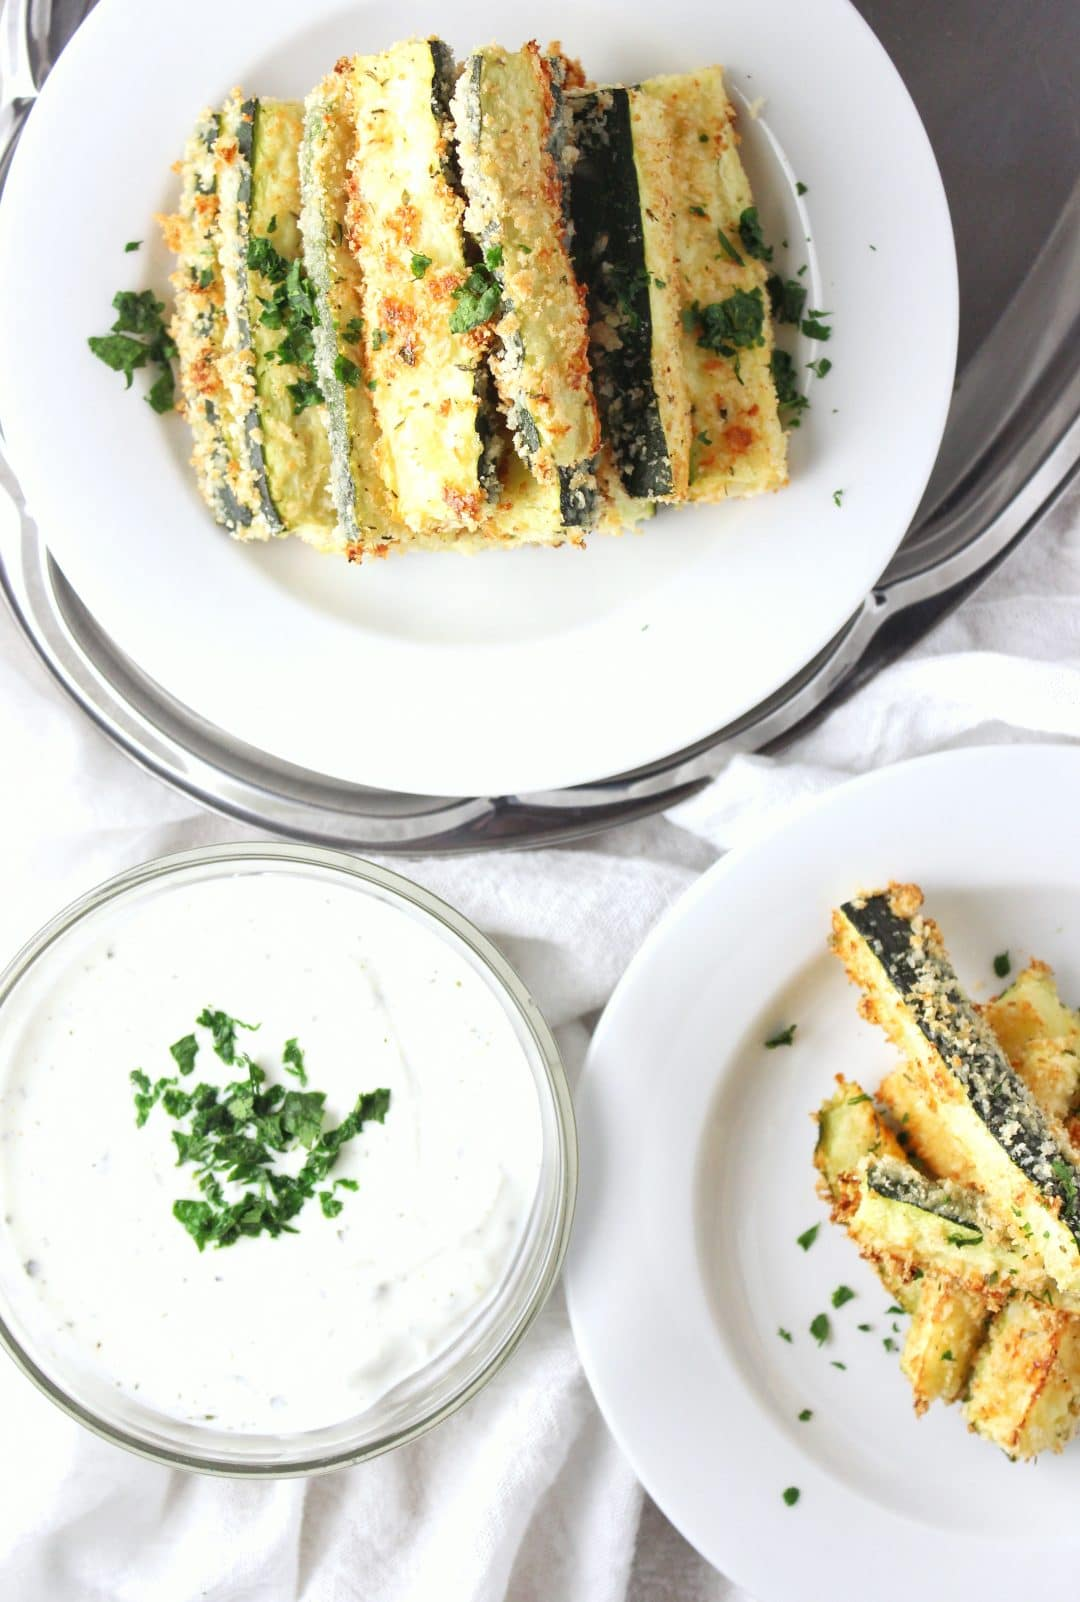 Baked Zucchini Fries - a crispy, tender, and healthy alternative to fried potato fries. This recipe is so easy to make and pair with any meal. simplylakita.com #healthyrecipe #zucchini